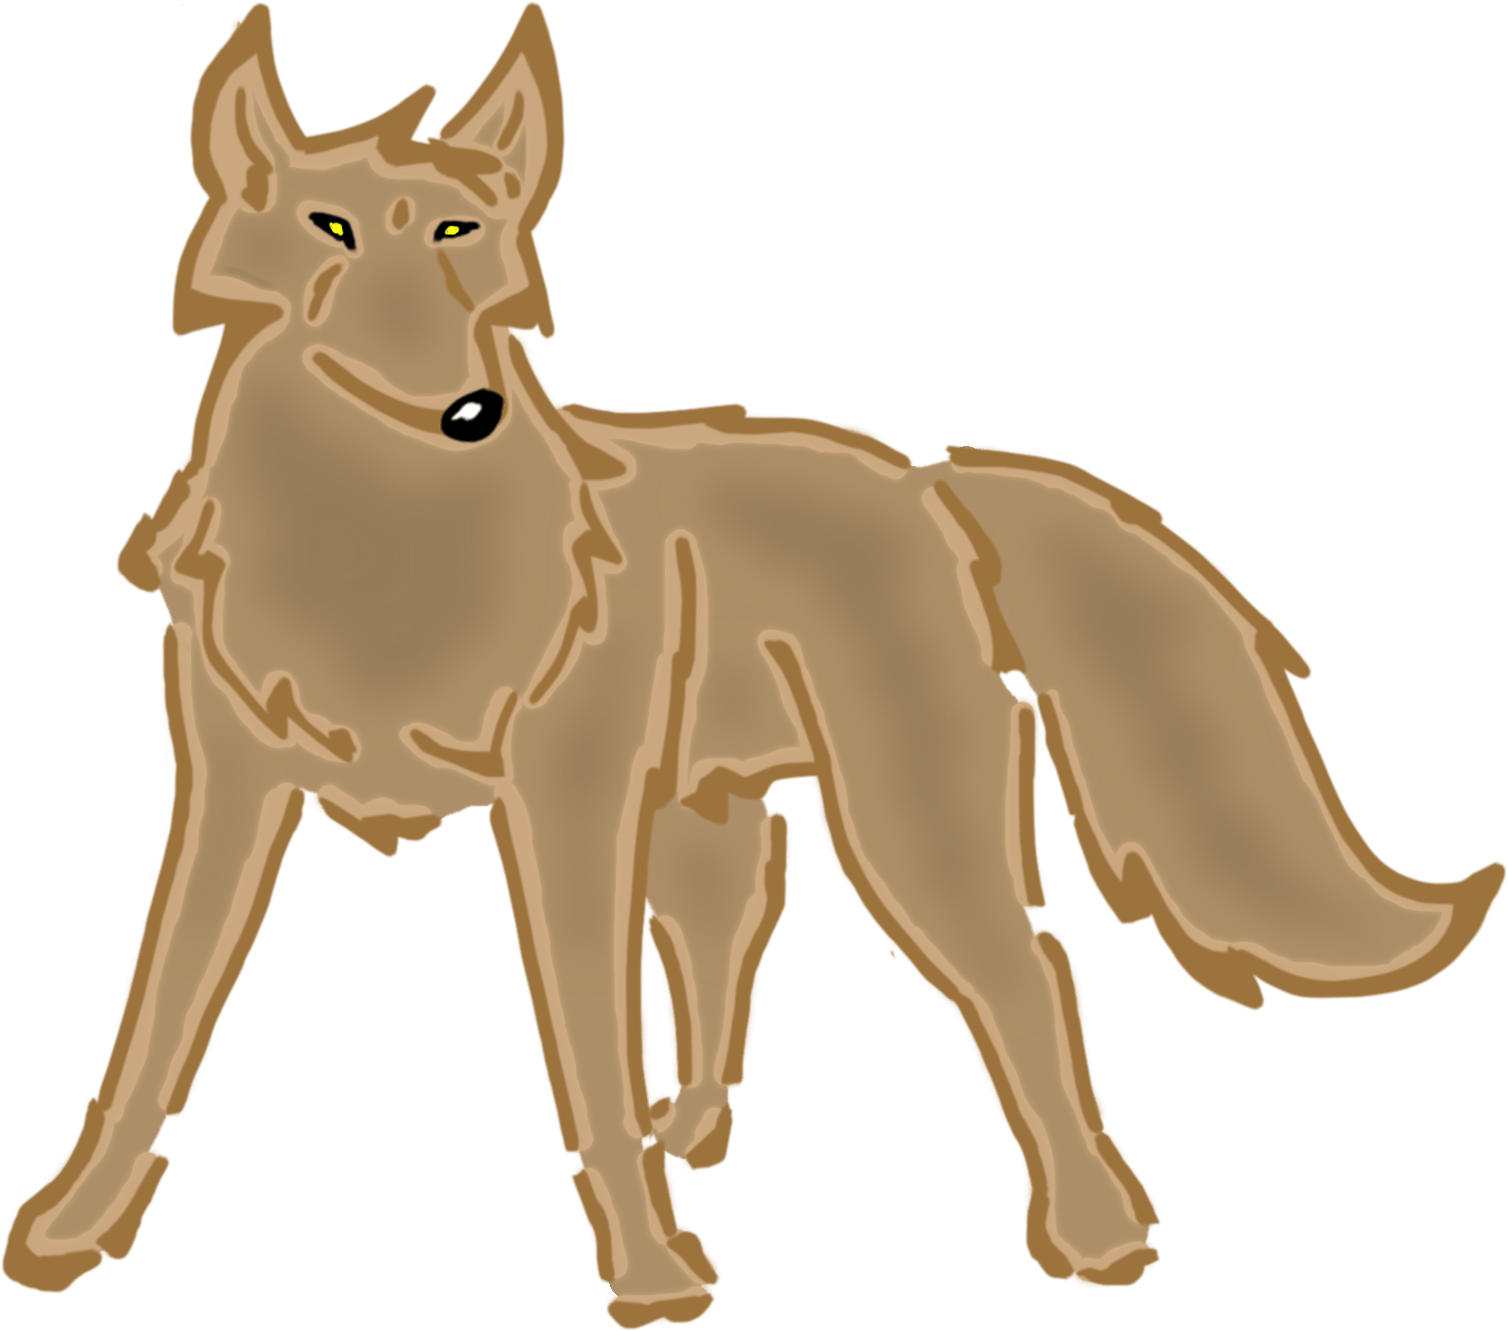 Wolf clipart realistic. Animated free download clip